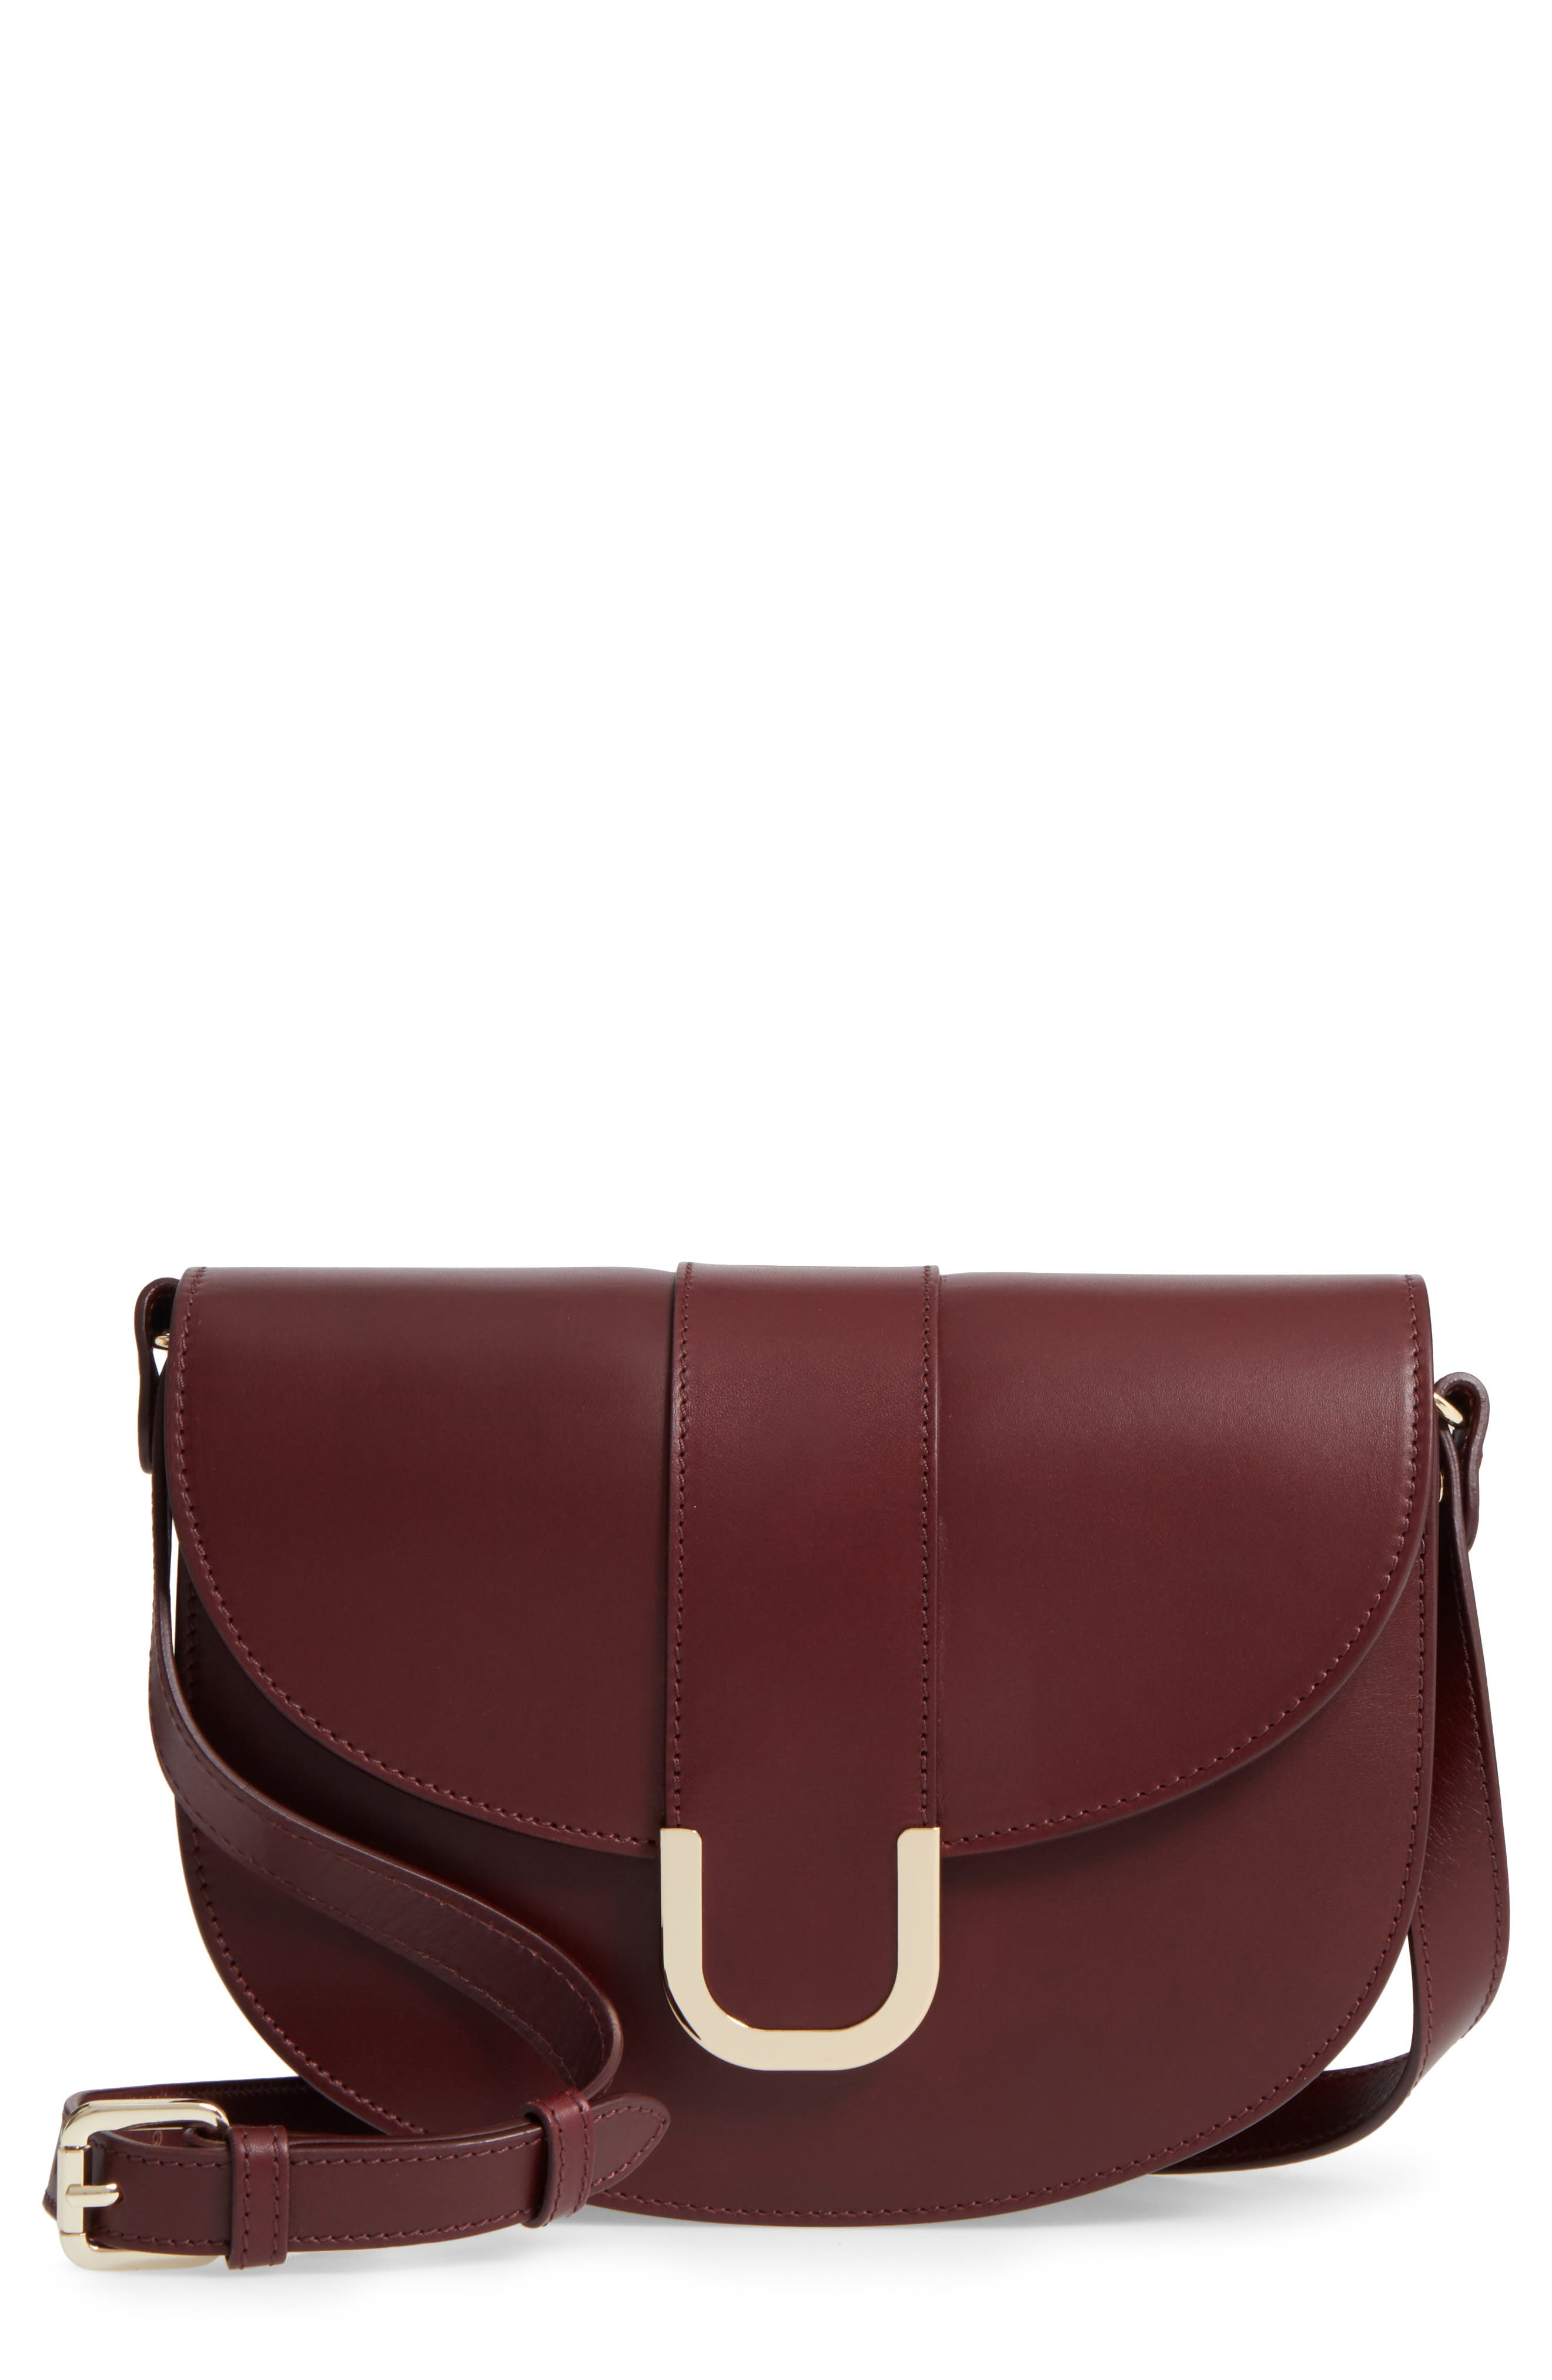 Soho Calfskin Leather Saddle Bag,                             Main thumbnail 1, color,                             600